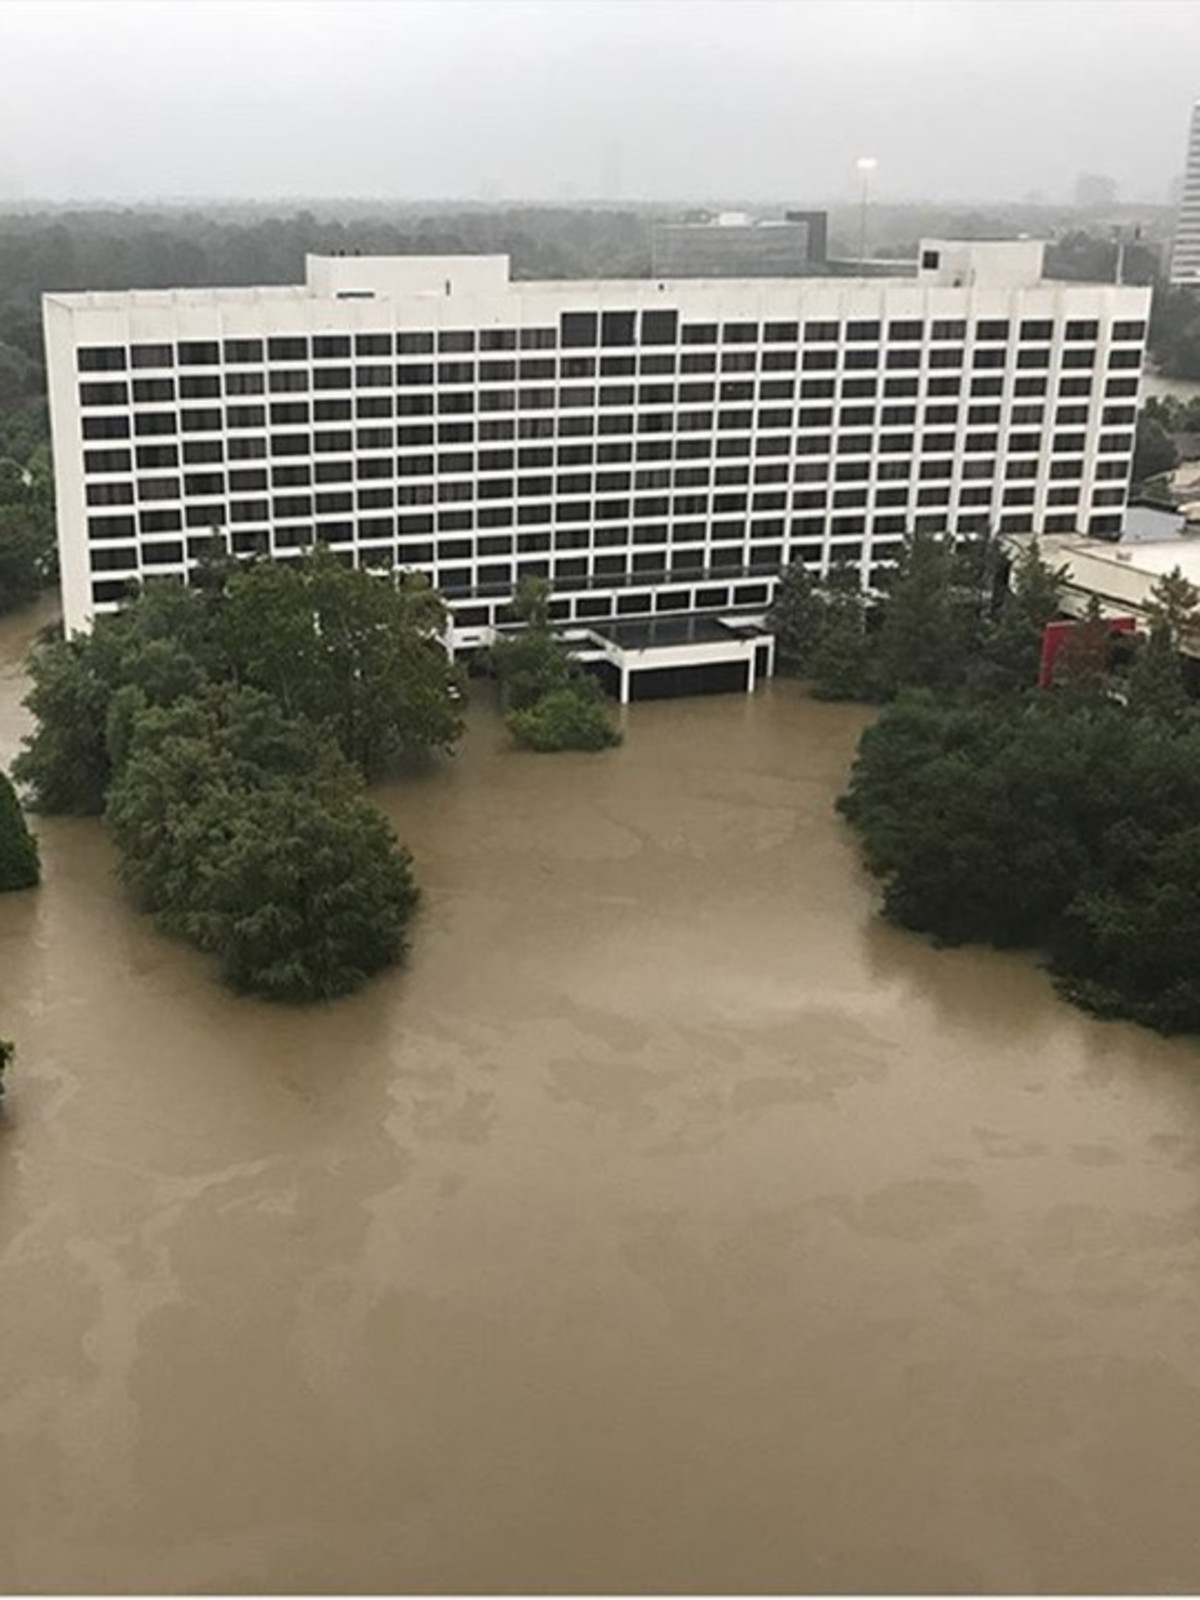 flooding at Houston Omni hotel from Hurricane Harvey